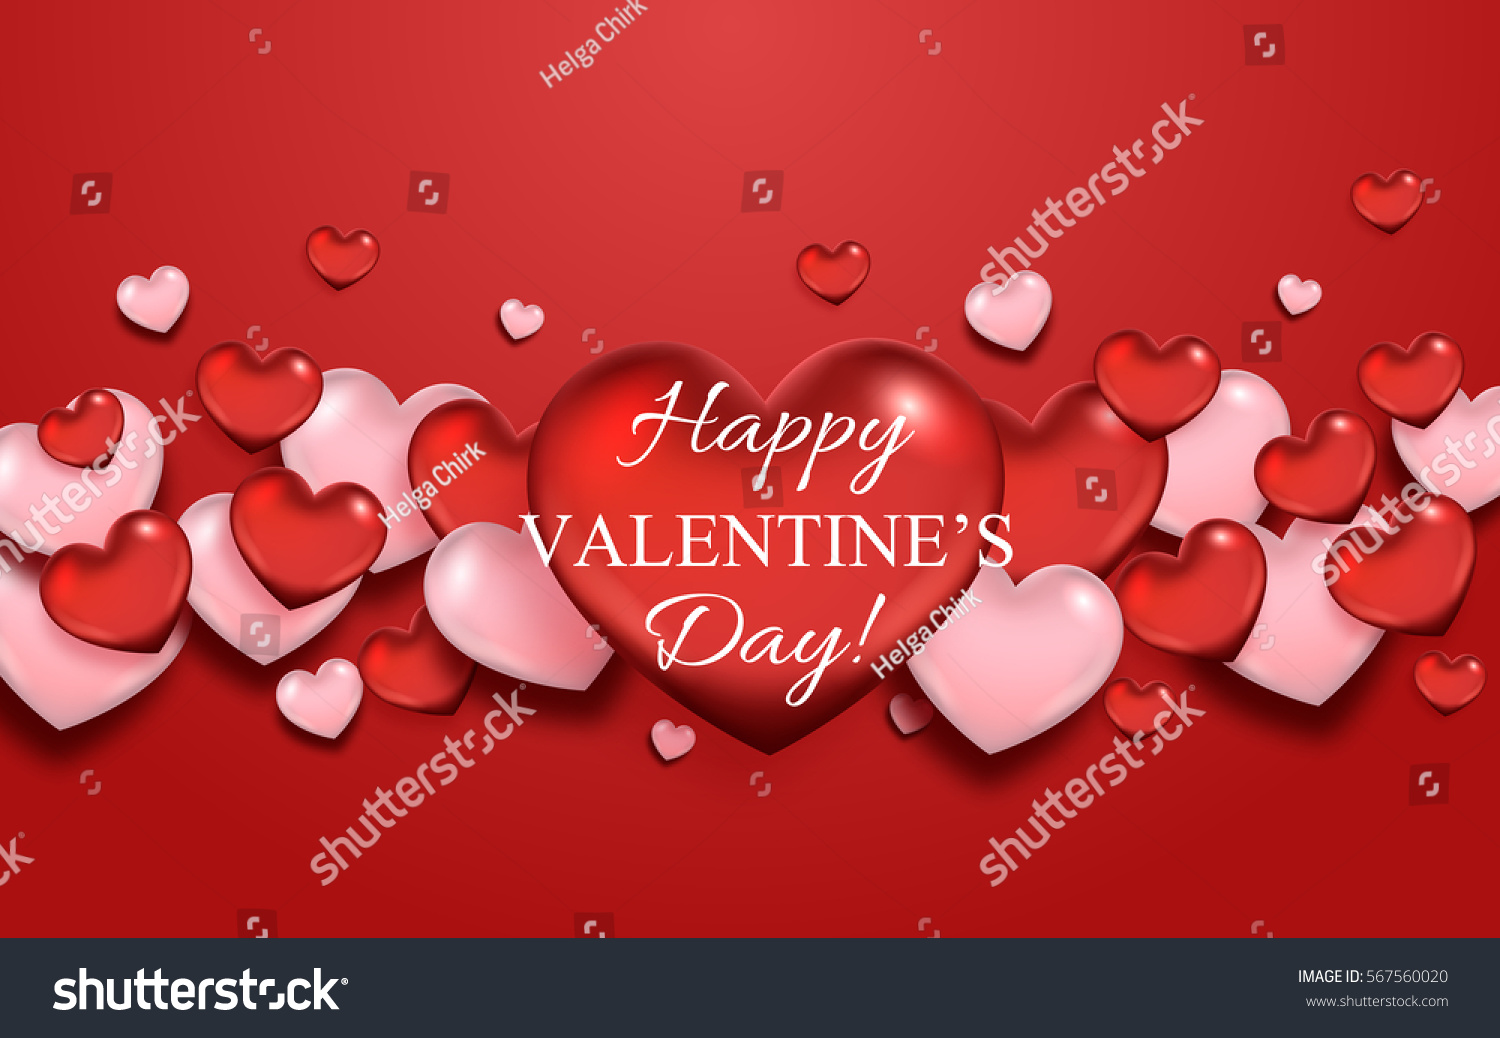 Valentines Day Greeting Card Flying Hearts Vector 567560020 – Valentine Day Greetings Card